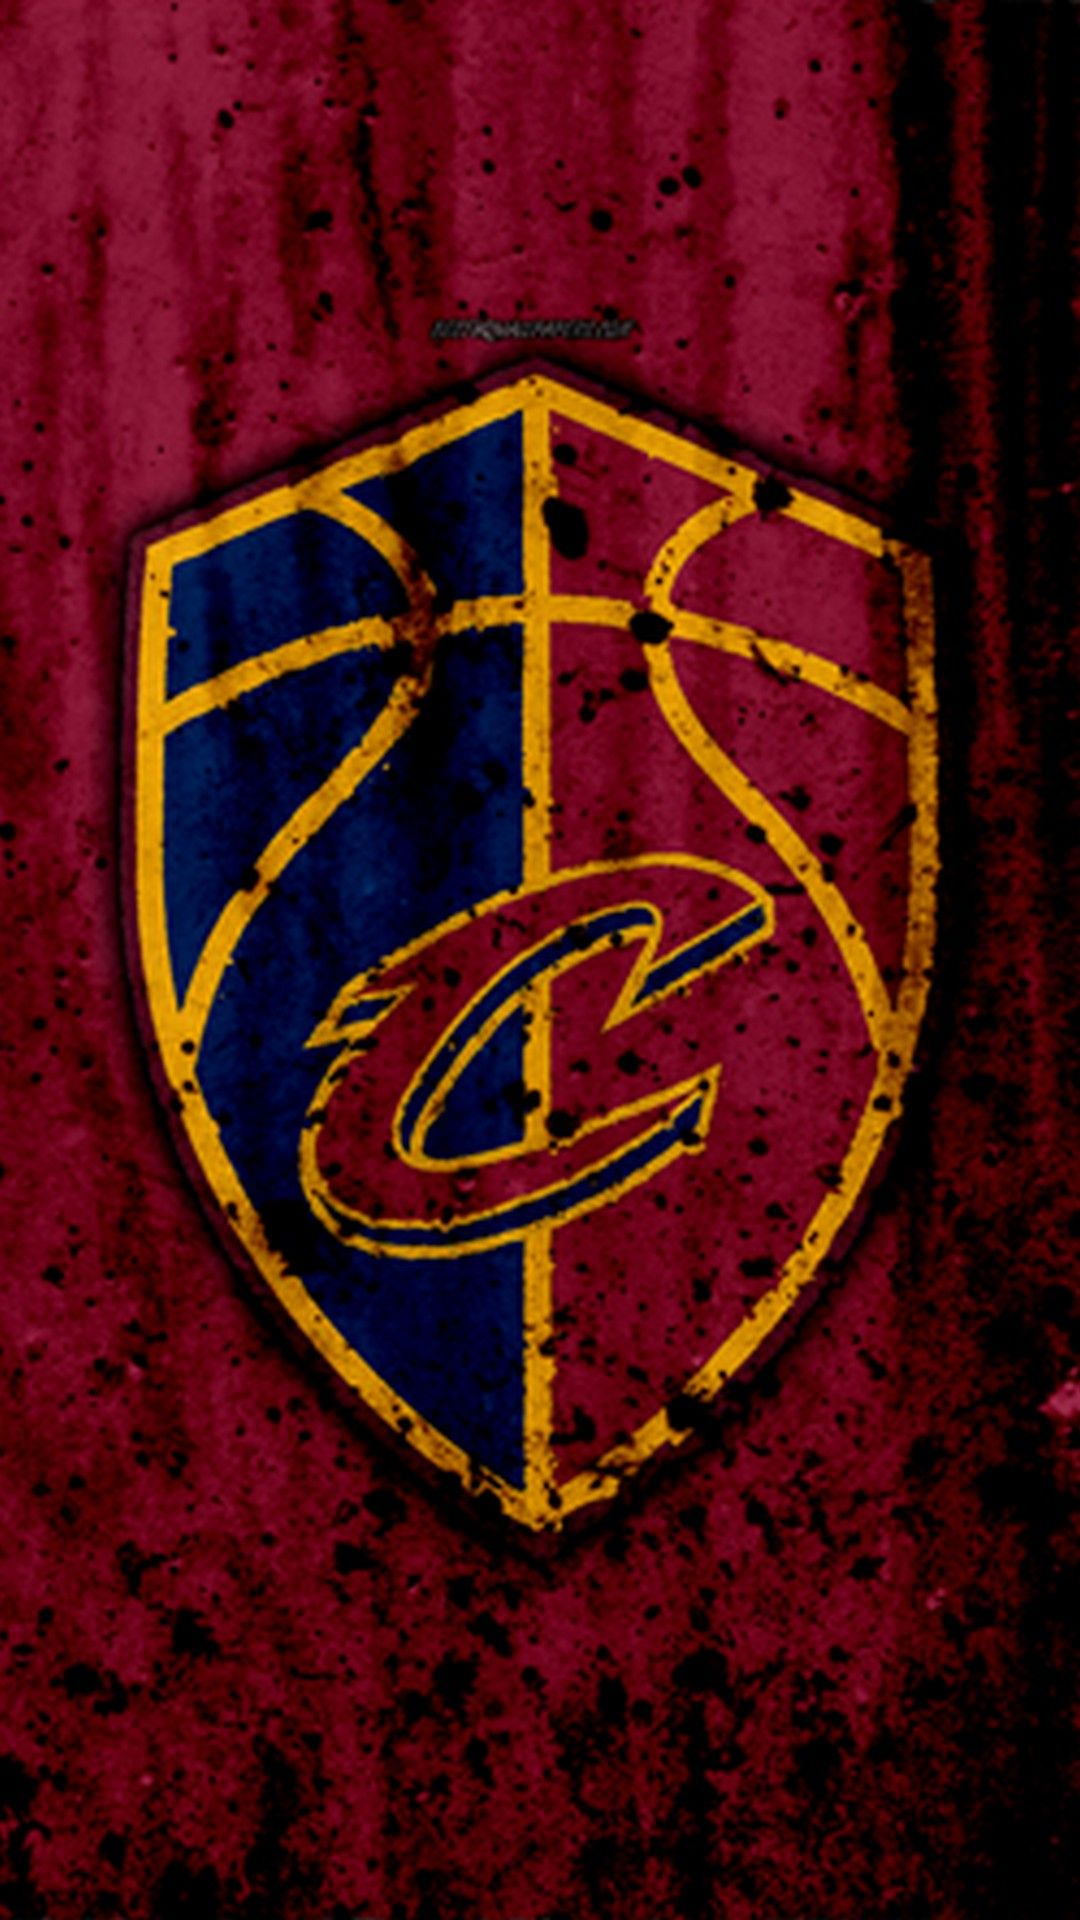 Cleveland Cavaliers Hd Wallpaper For Iphone Is The Perfect High Quality Nba Basketball Wallpa Basketball Wallpapers Hd Hd Wallpaper Iphone Basketball Wallpaper